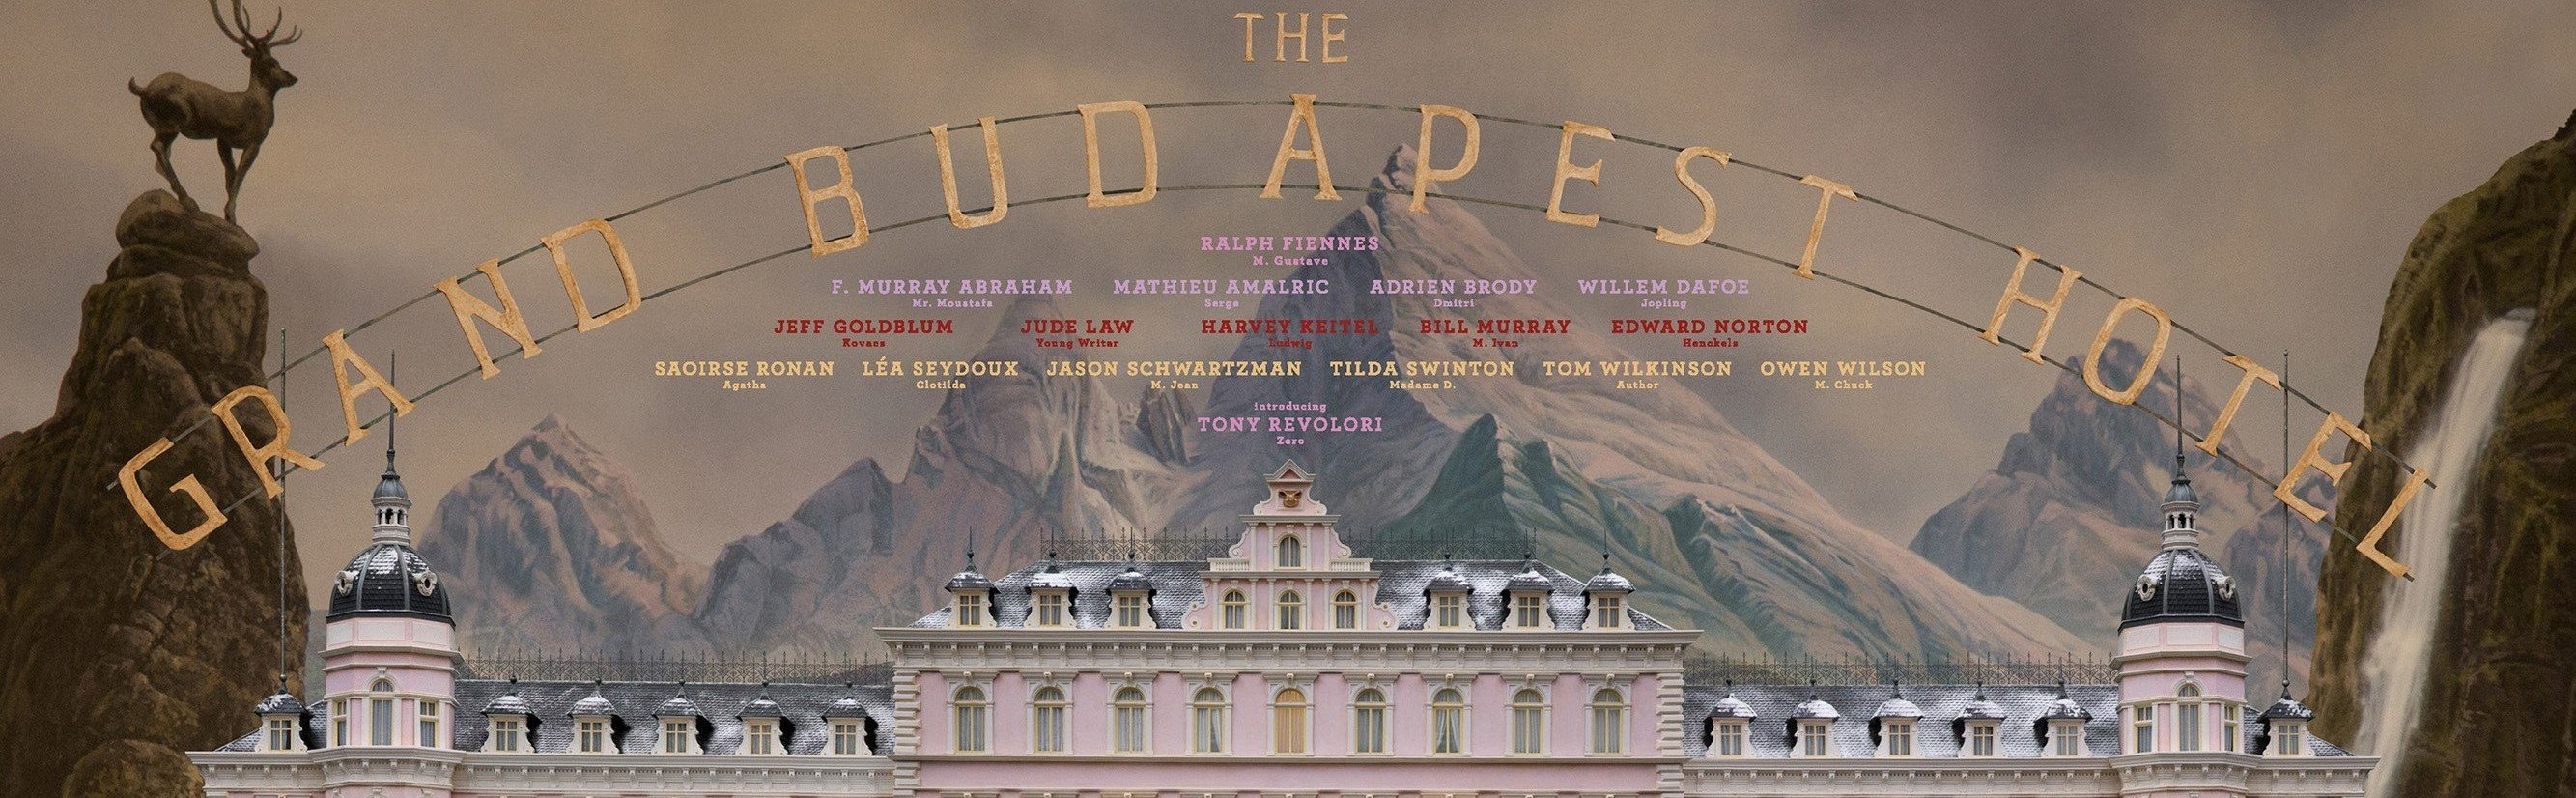 Take 2: The Grand Budapest Hotel feature image